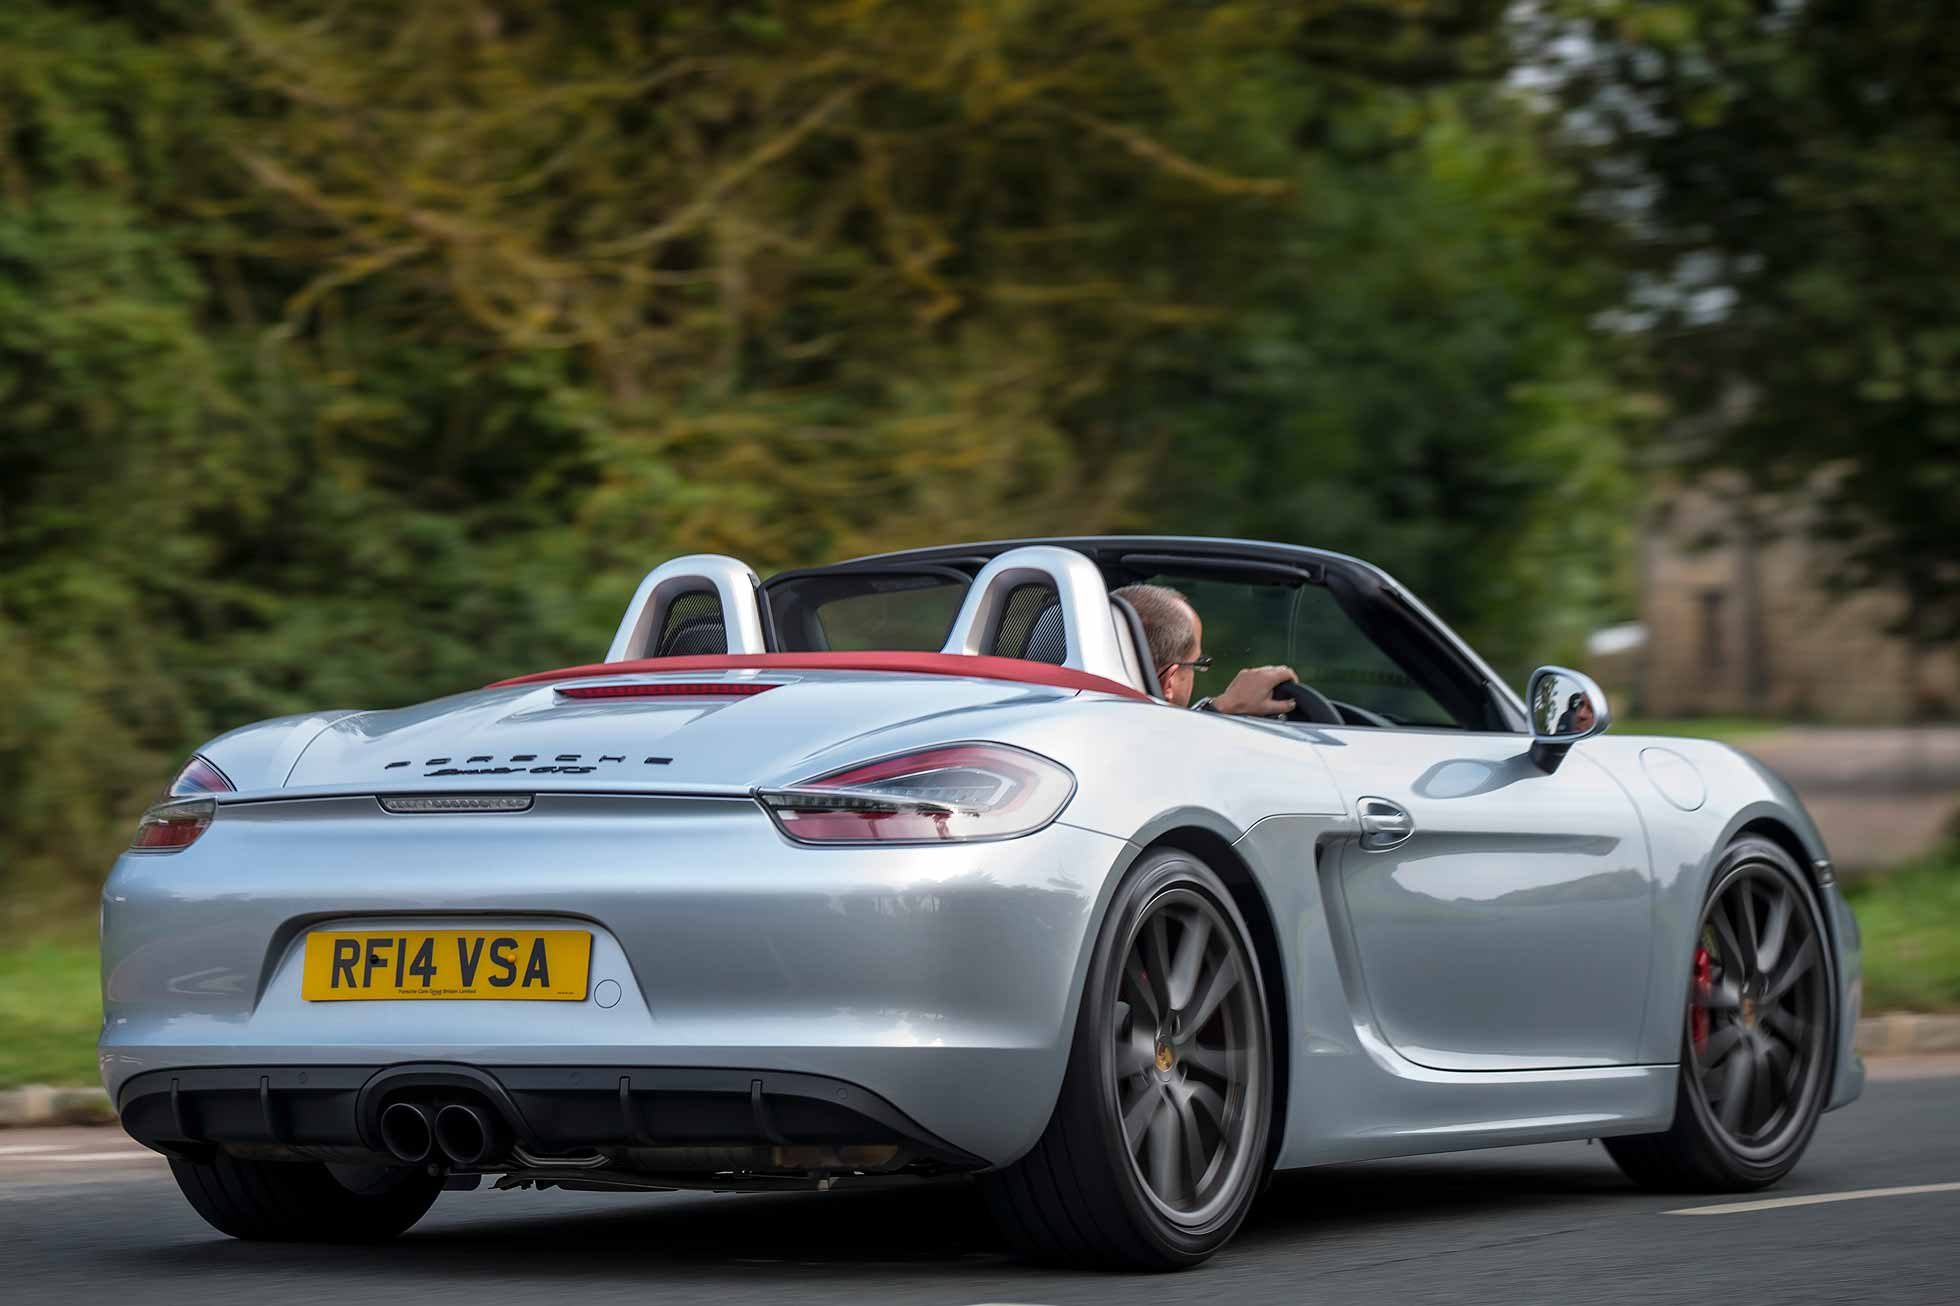 Porsche Boxster Gts 2014 Road Test Review Motoring